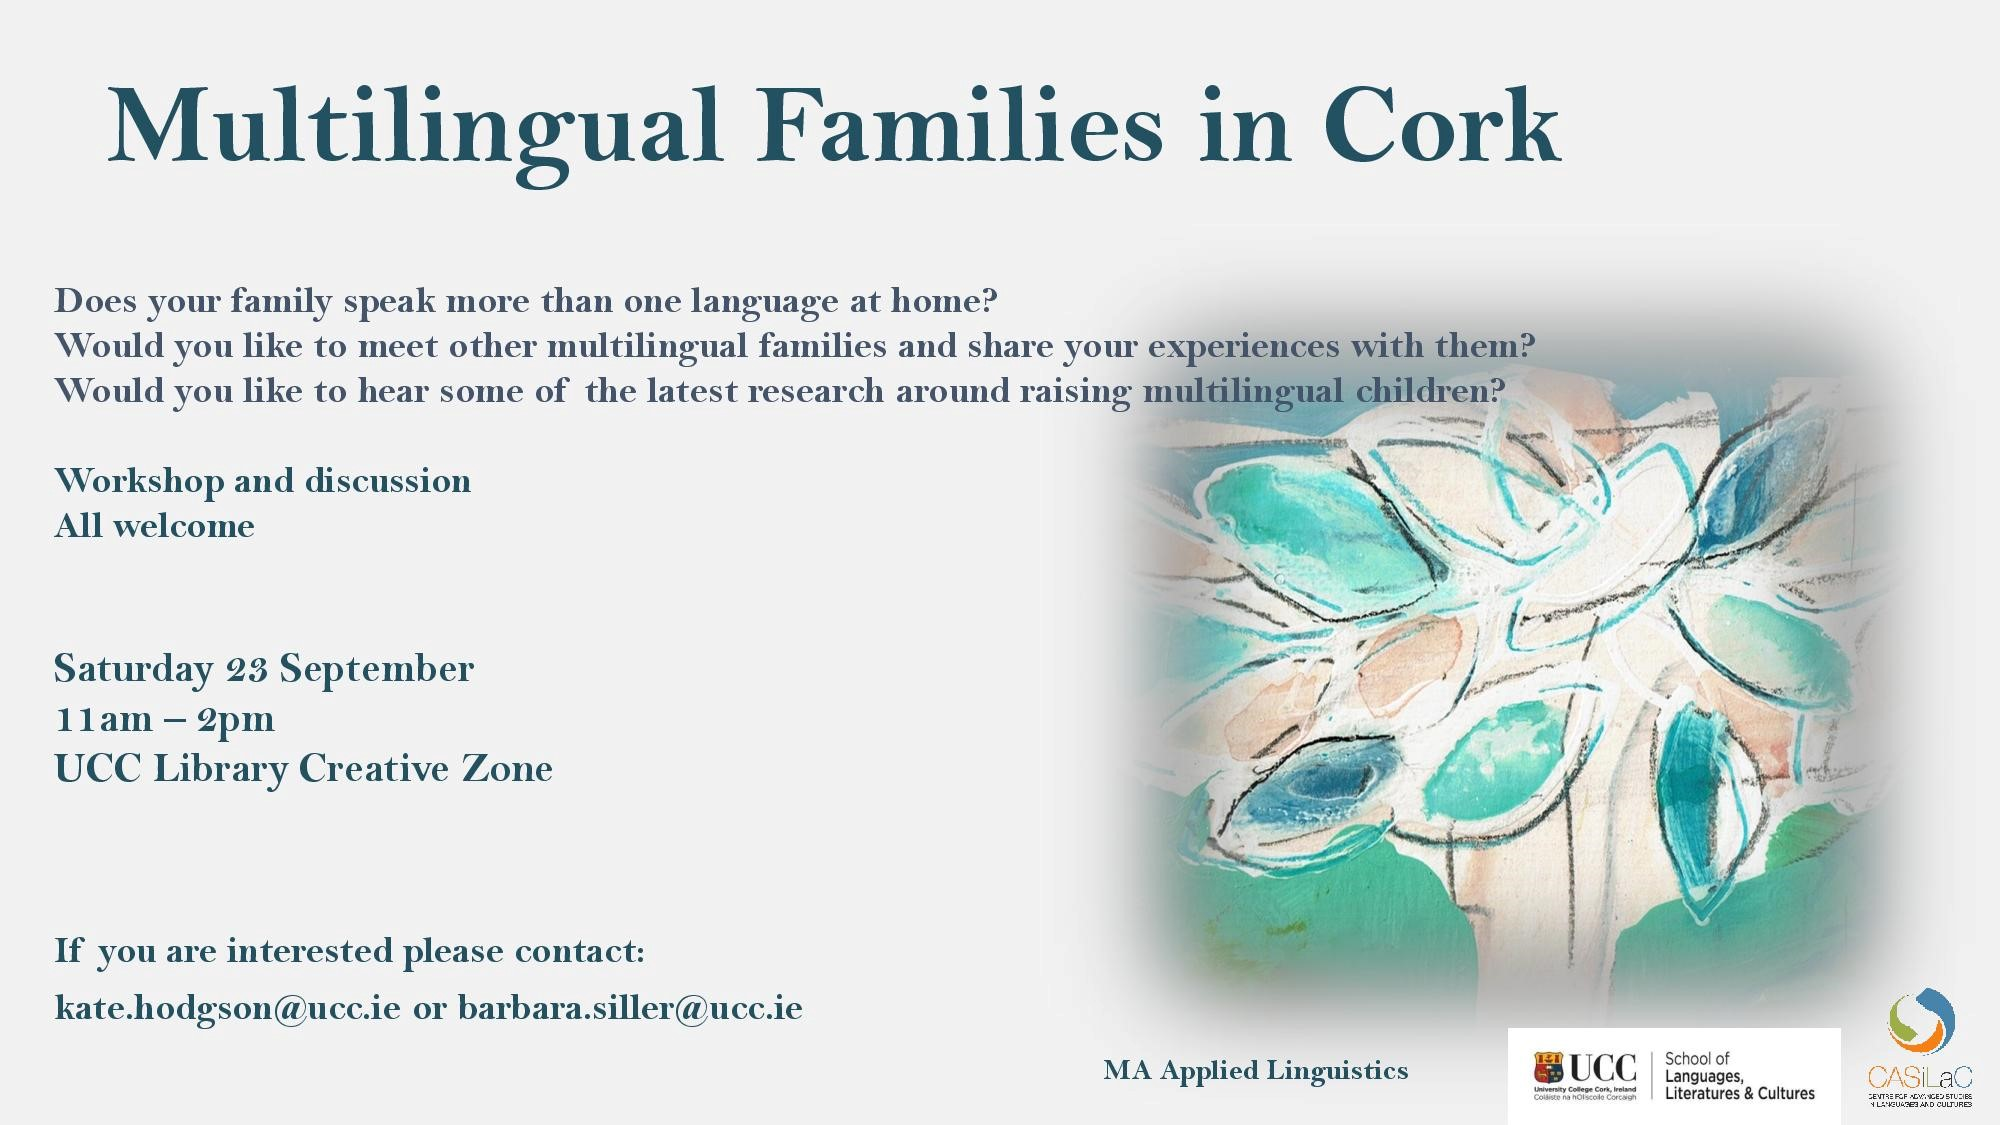 Multilingual Families in Cork